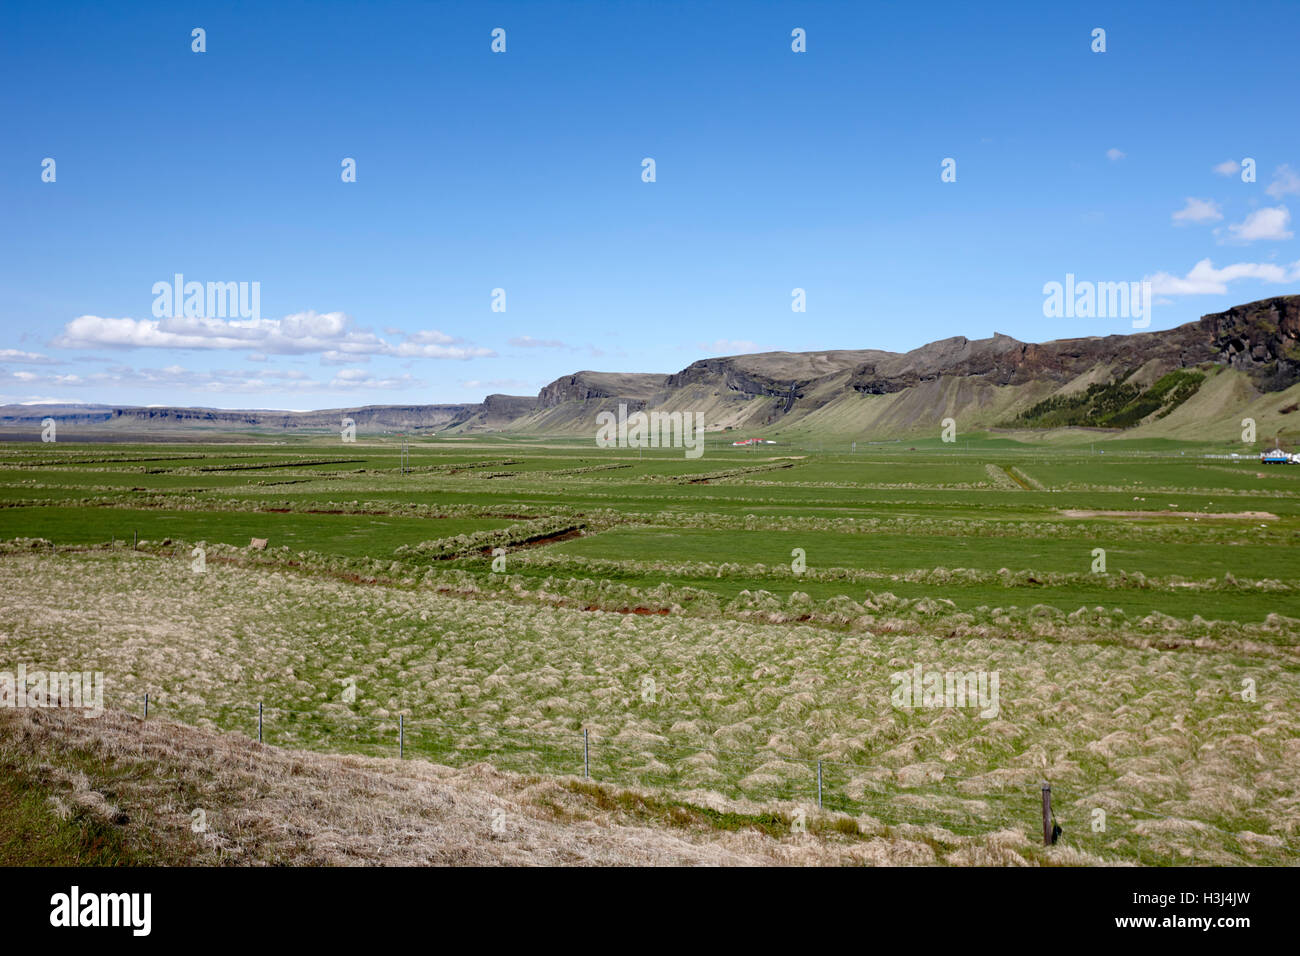 lush fertile icelandic farm and farmland with drained fields Iceland - Stock Image